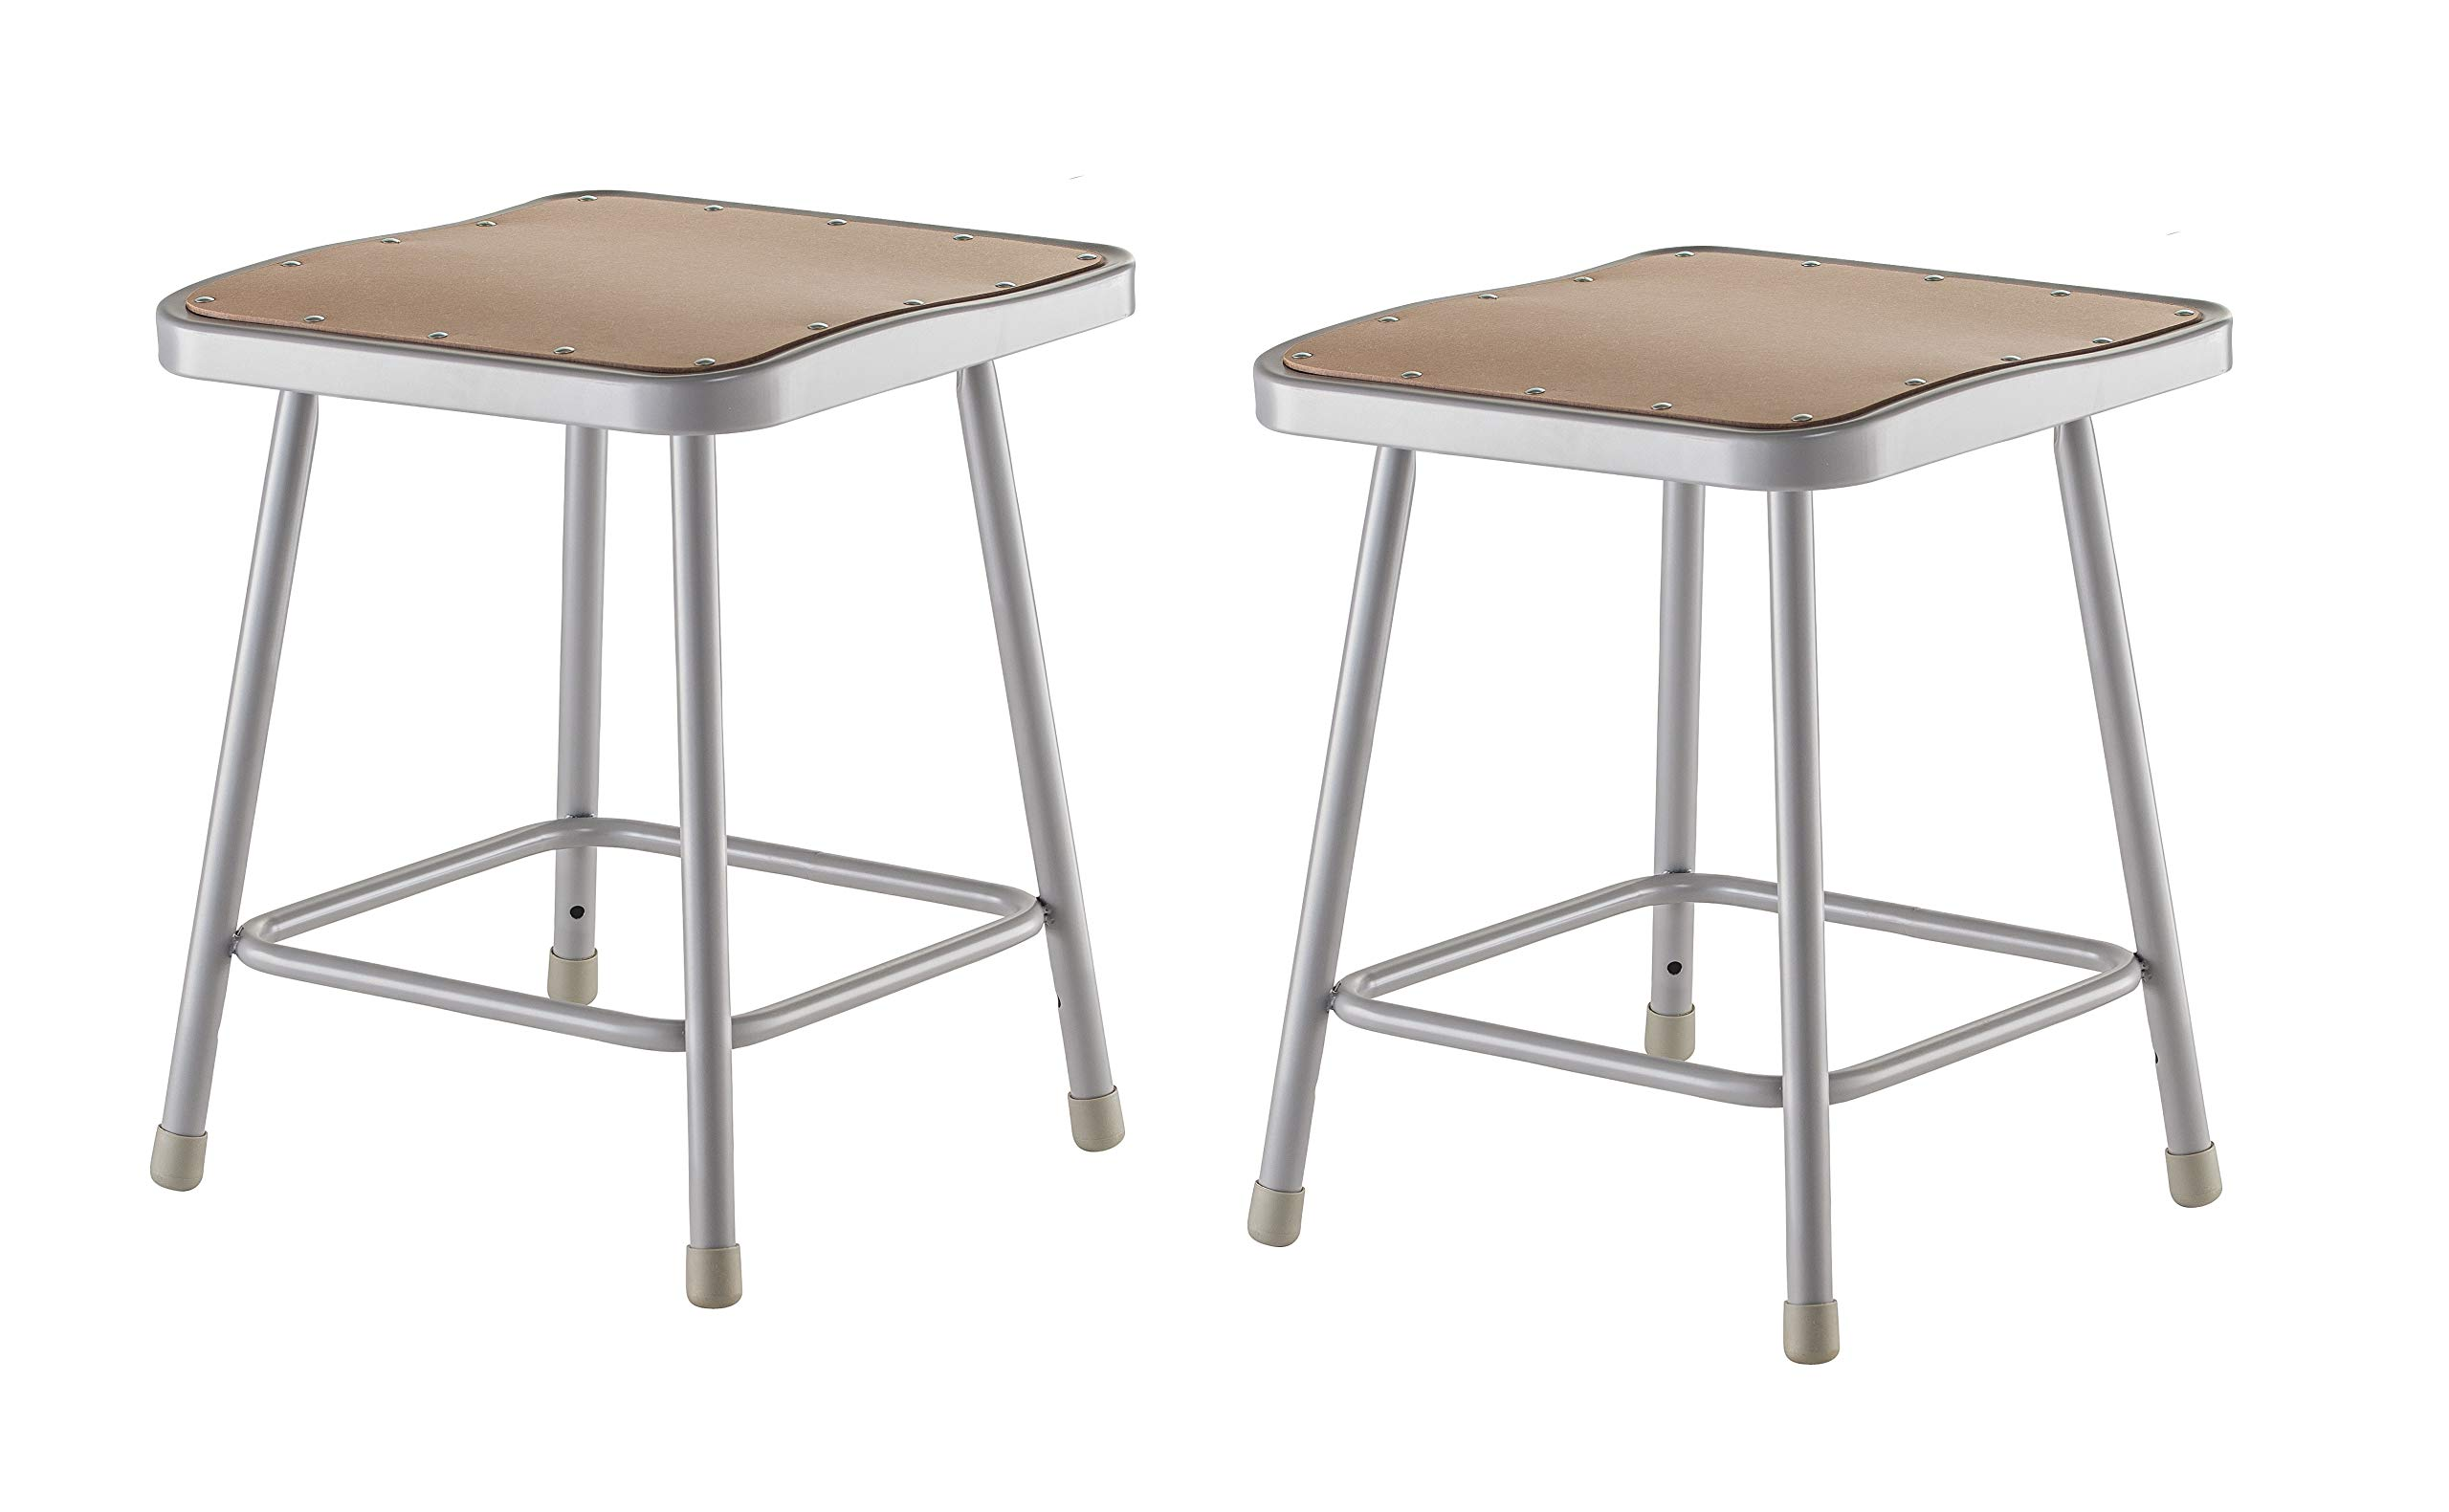 National Public Seating 6318-CN Steel Stool with Square 18'' Hardboard Seat, Grey (Pack of 2) by National Public Seating